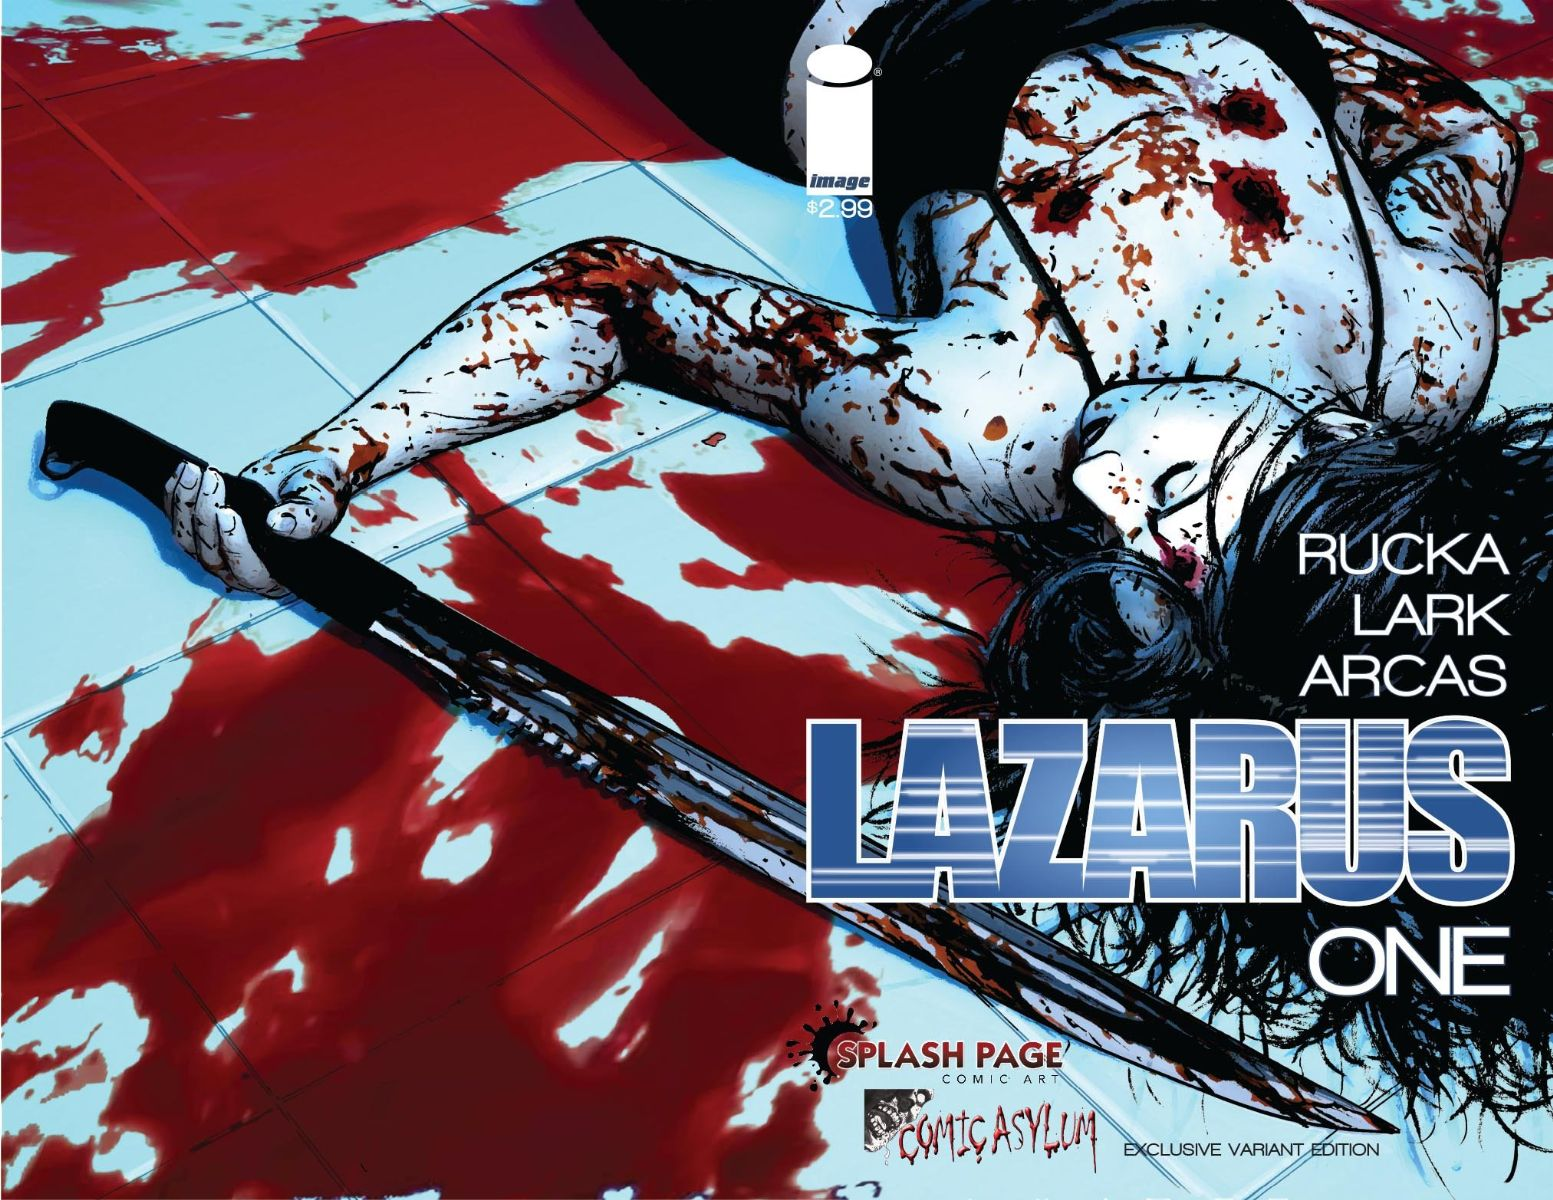 Splash Page Comic Art & Comic Asylum Retailer Variant of Lazarus Issue 1